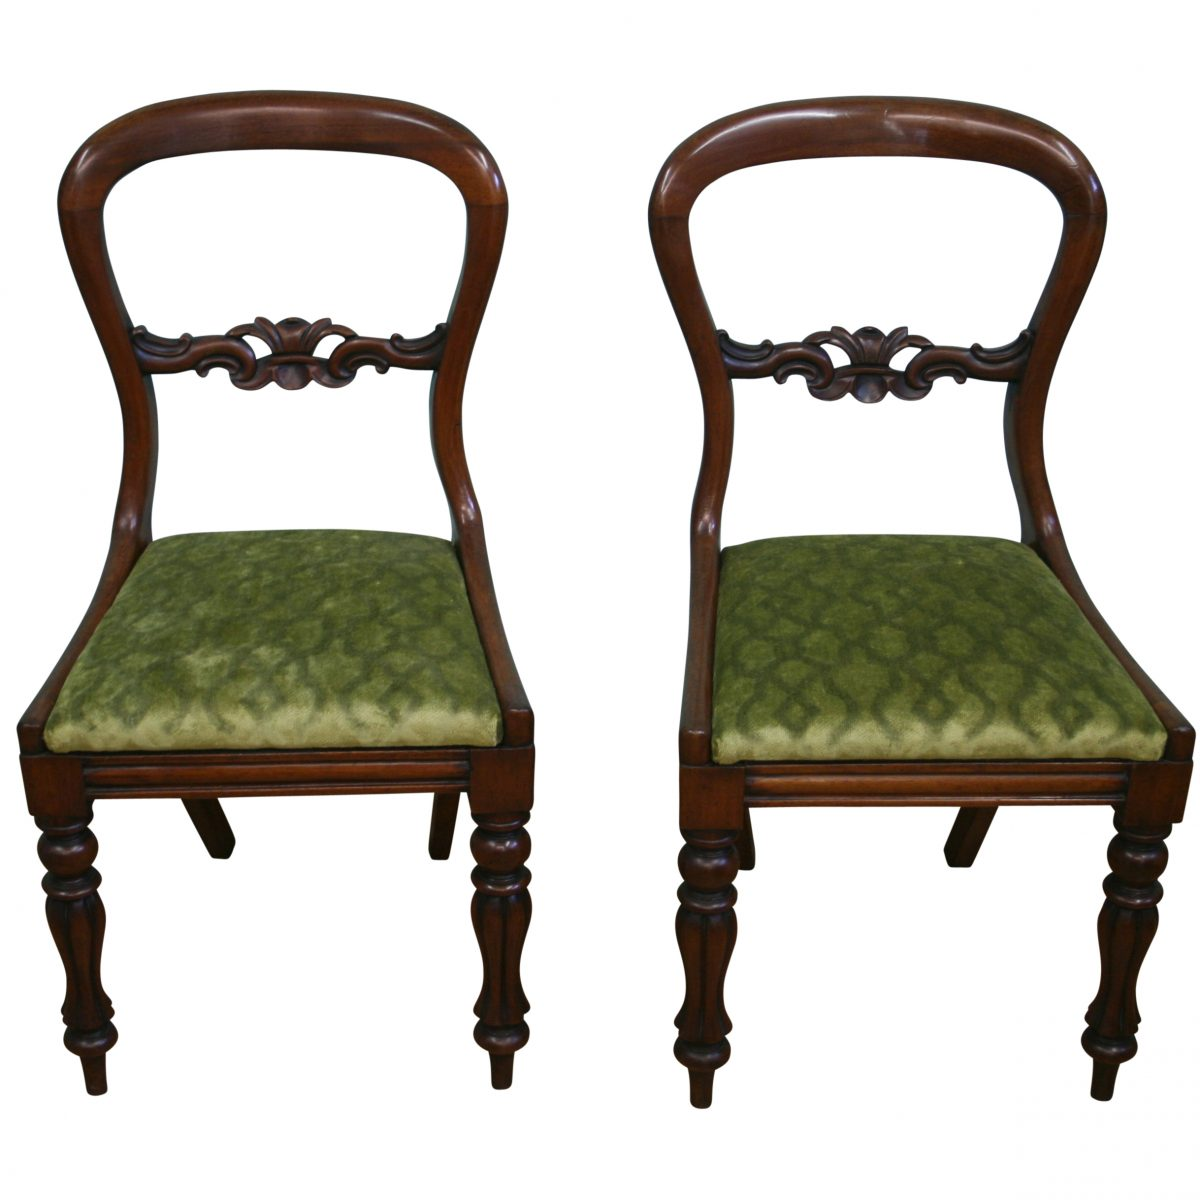 Victorian balloon back side chairs/williamsantiquesbedford